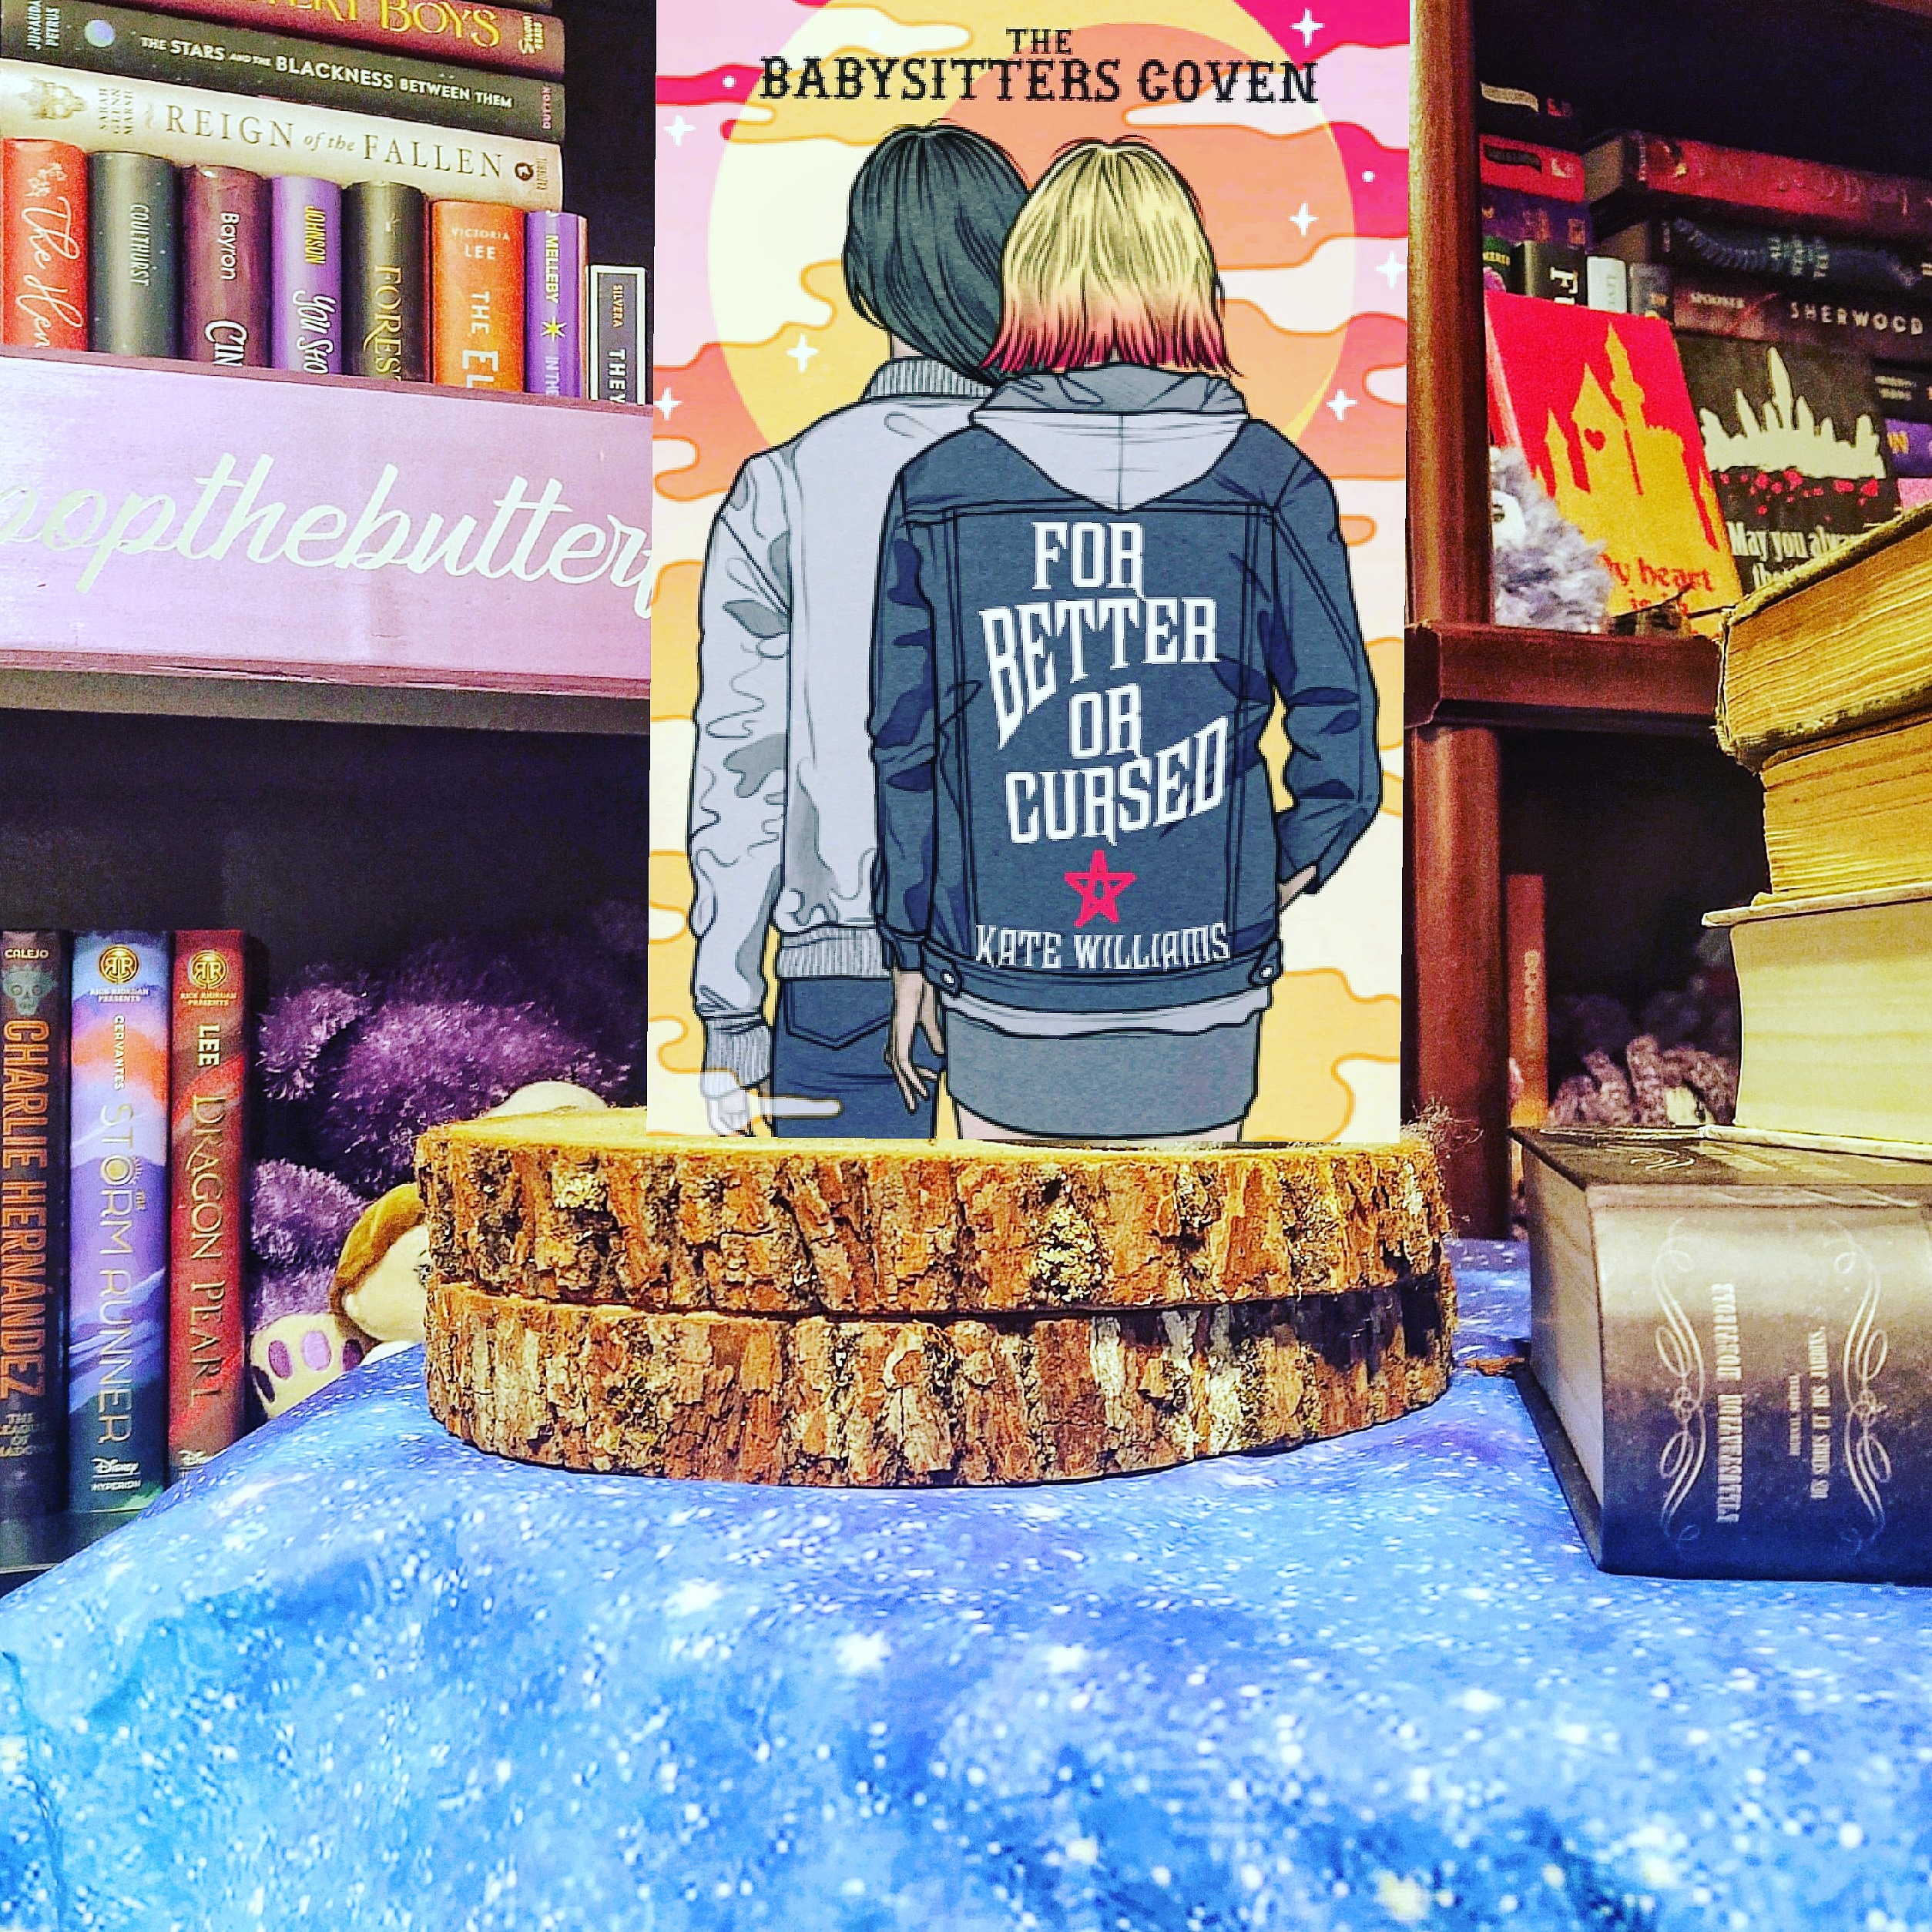 For Better or Cursed by Kate Williams